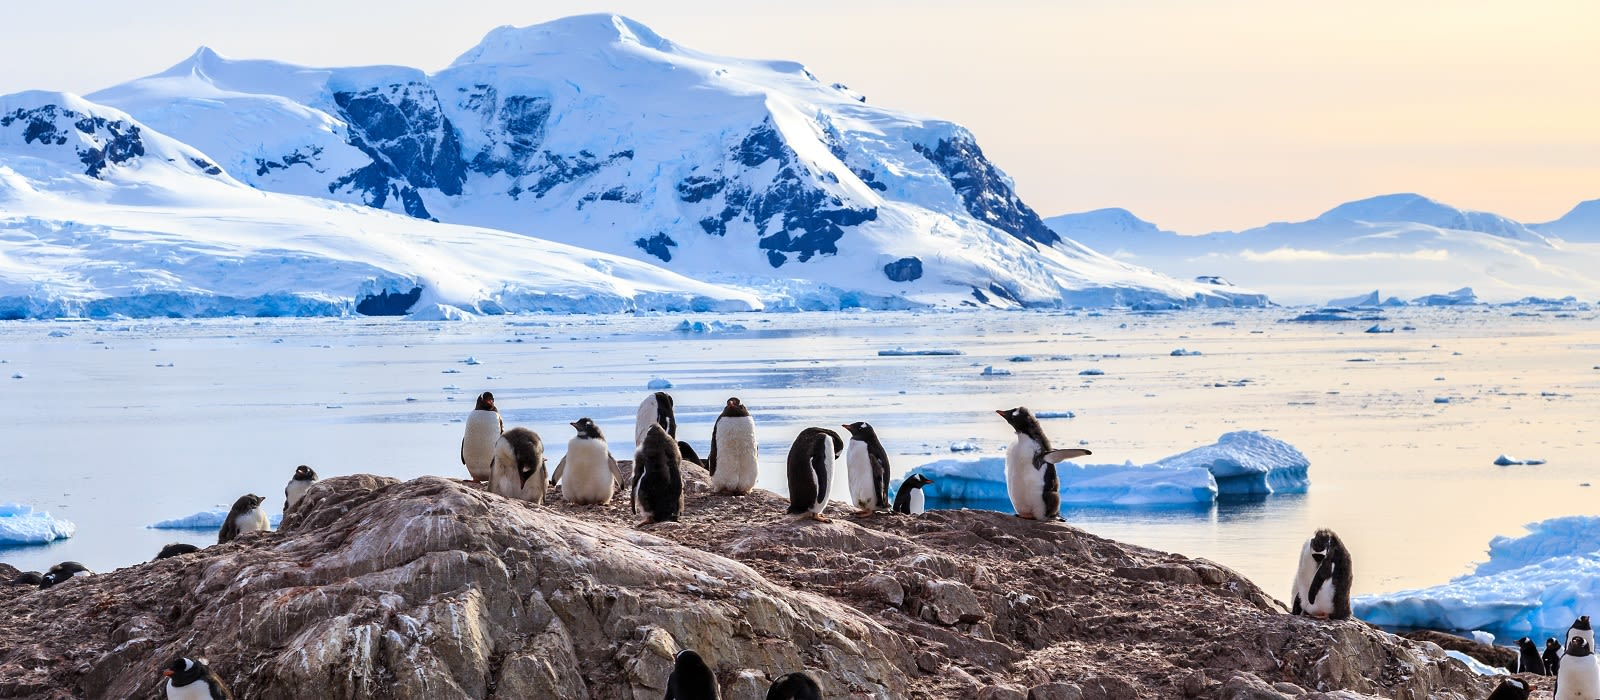 Enchanting Travels Antarctica Tours Rocky coastline overcrowded by gentoo pengins and glacier with icebergs in the background at Neco bay, Antarctic